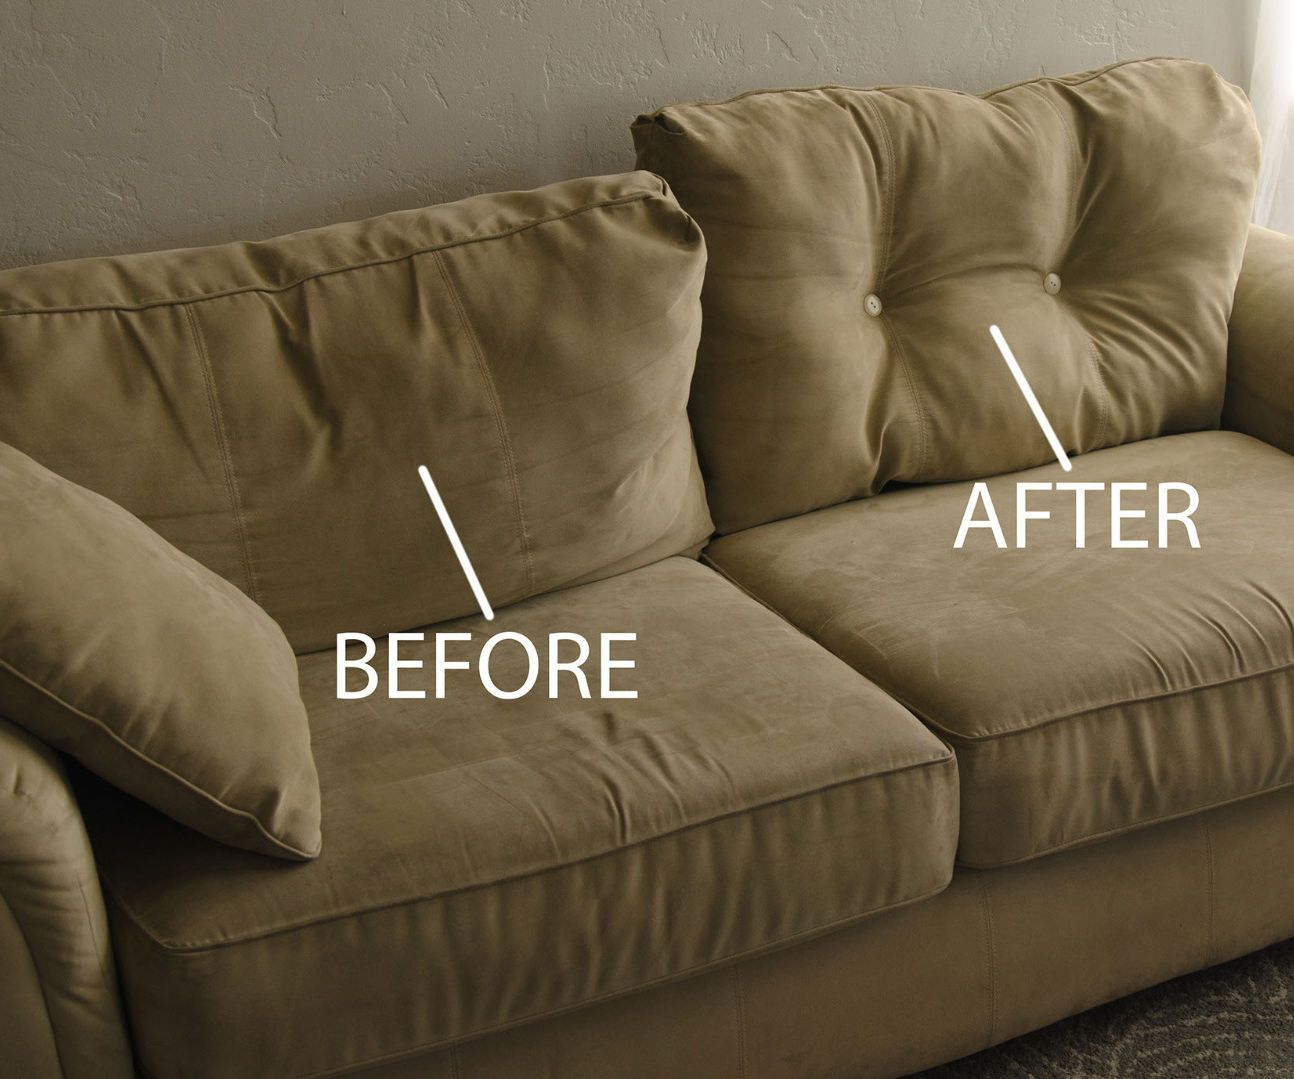 How To Fix A Sagging Sofa Bed Remove Stain On Leather 1 For Saggy Couch Cushions Reupholstering Projects With Needle Thread Few Buttons And 15 Minutes You Can Convert Your From Shapeless Sacks Sculpted Snugly Supports